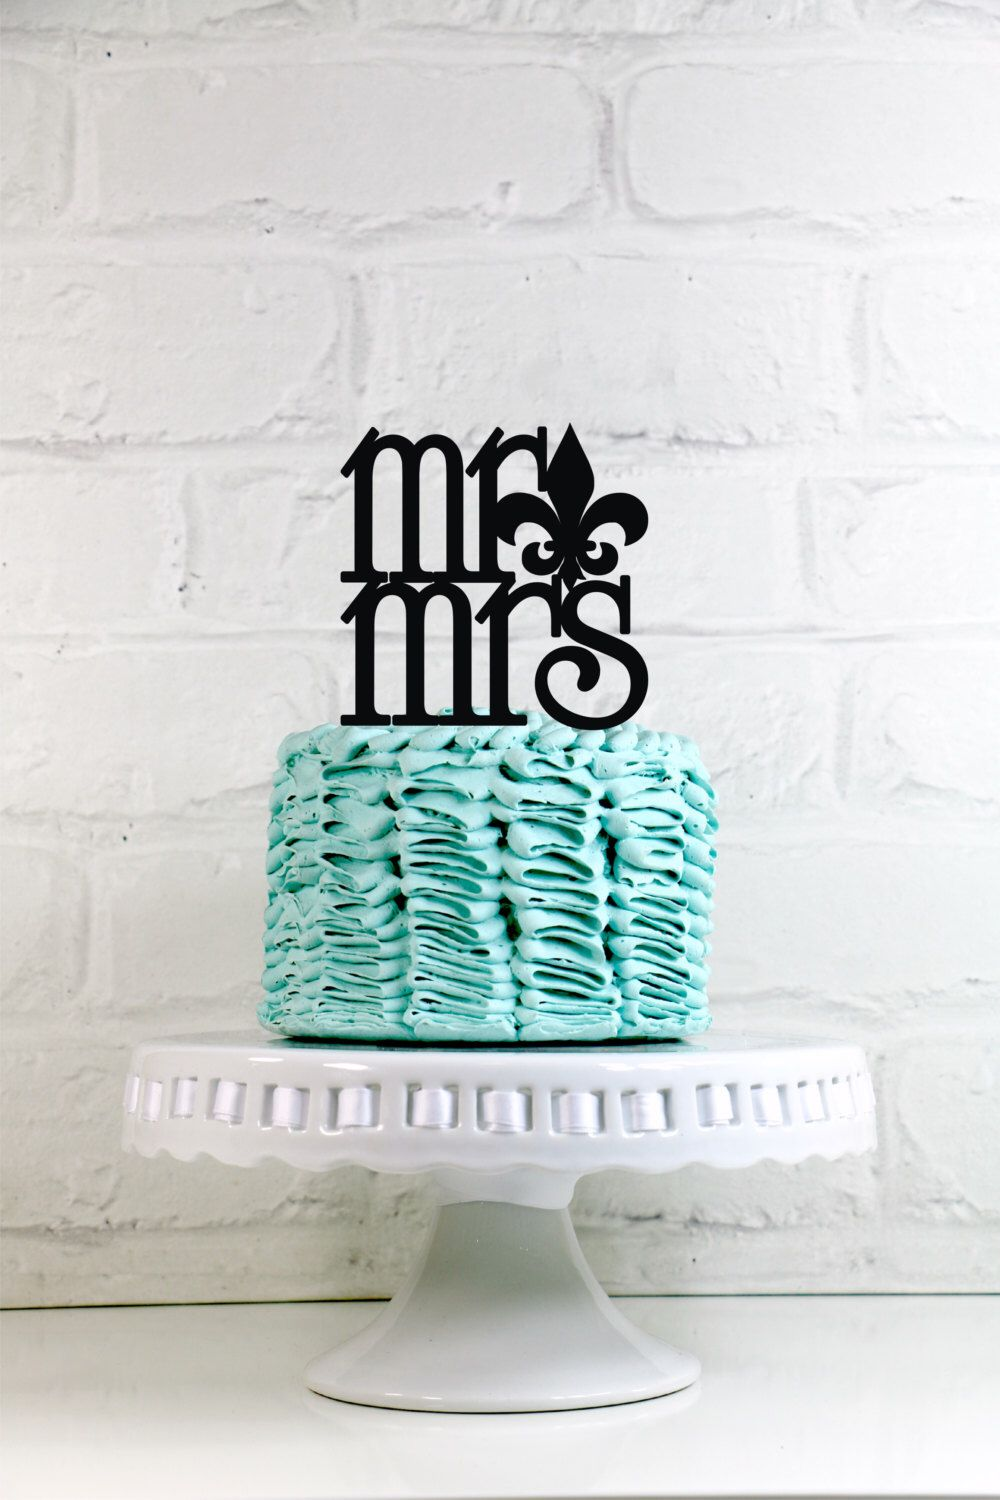 Mr & Mrs Fleur de lis Wedding Cake Topper or Sign Perfect for New ...